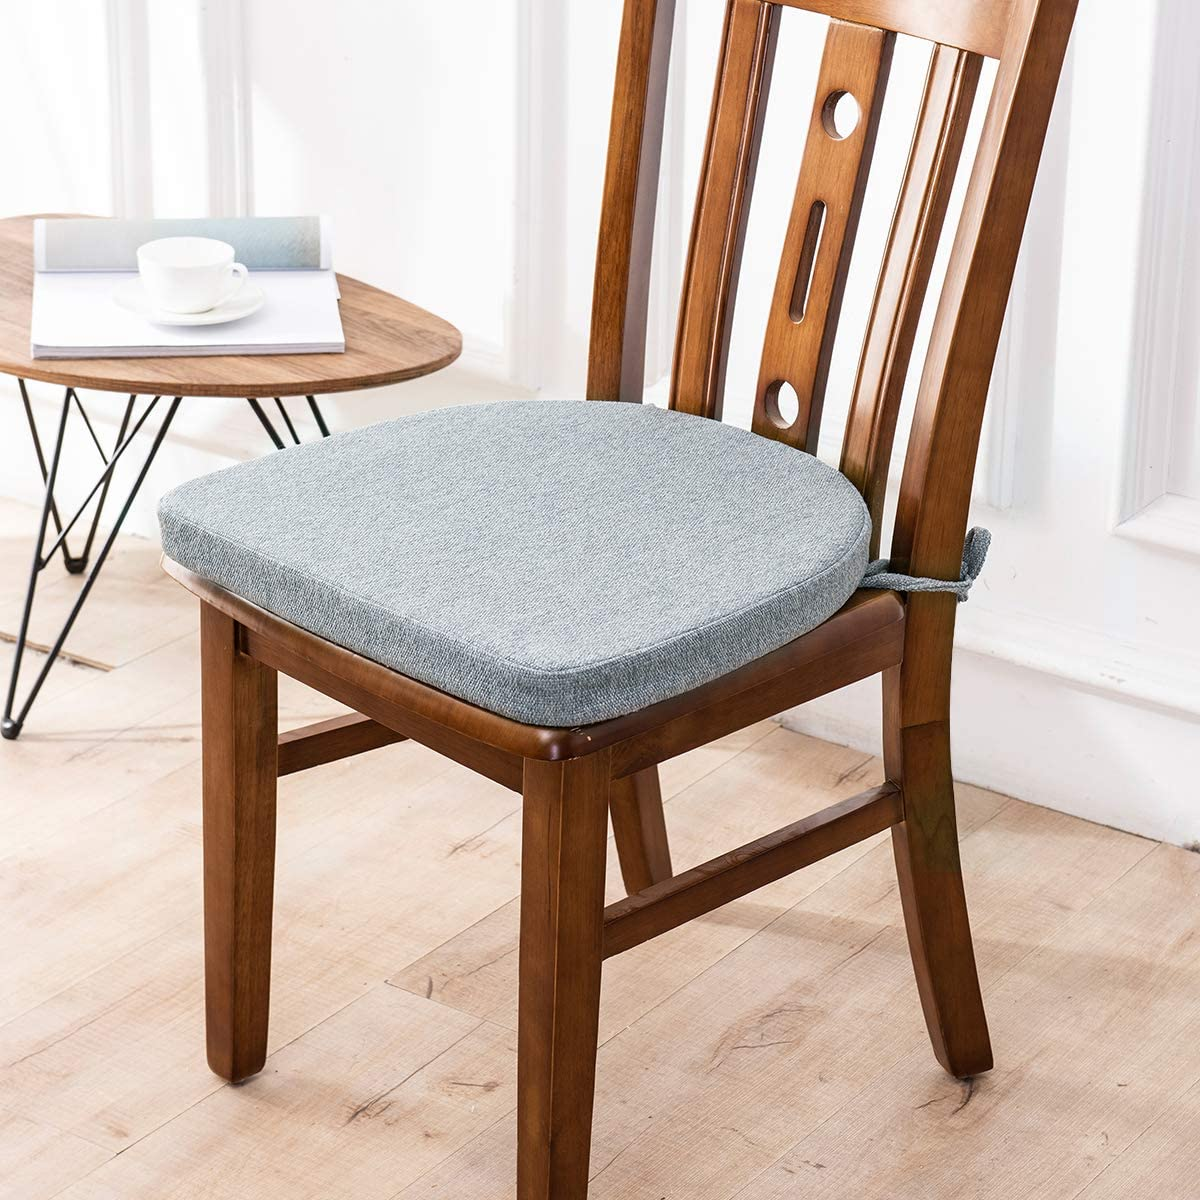 Shinnwa Chair Cushion with Ties for Dining Chairs [9 x 9.9 Inches] Non  Slip Kitchen Dining Chair Pad and Seat Cushion with Machine Washable Cover    ...